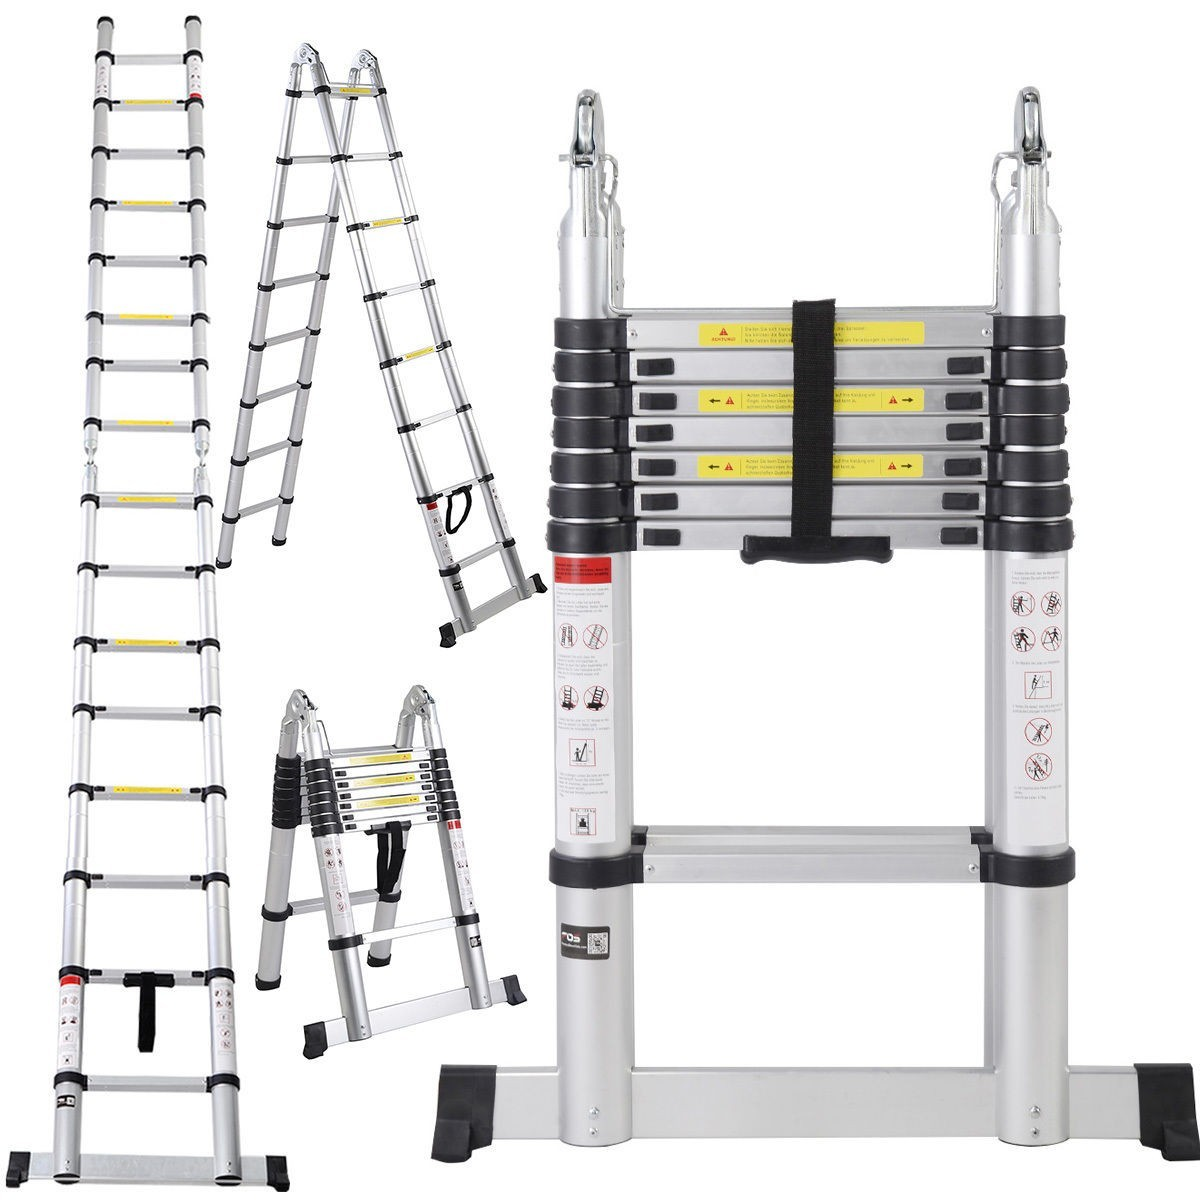 16.5 Ft Portable Aluminum Telescopic Ladder Telescoping A-type Extension Multi Purpose Lightweight